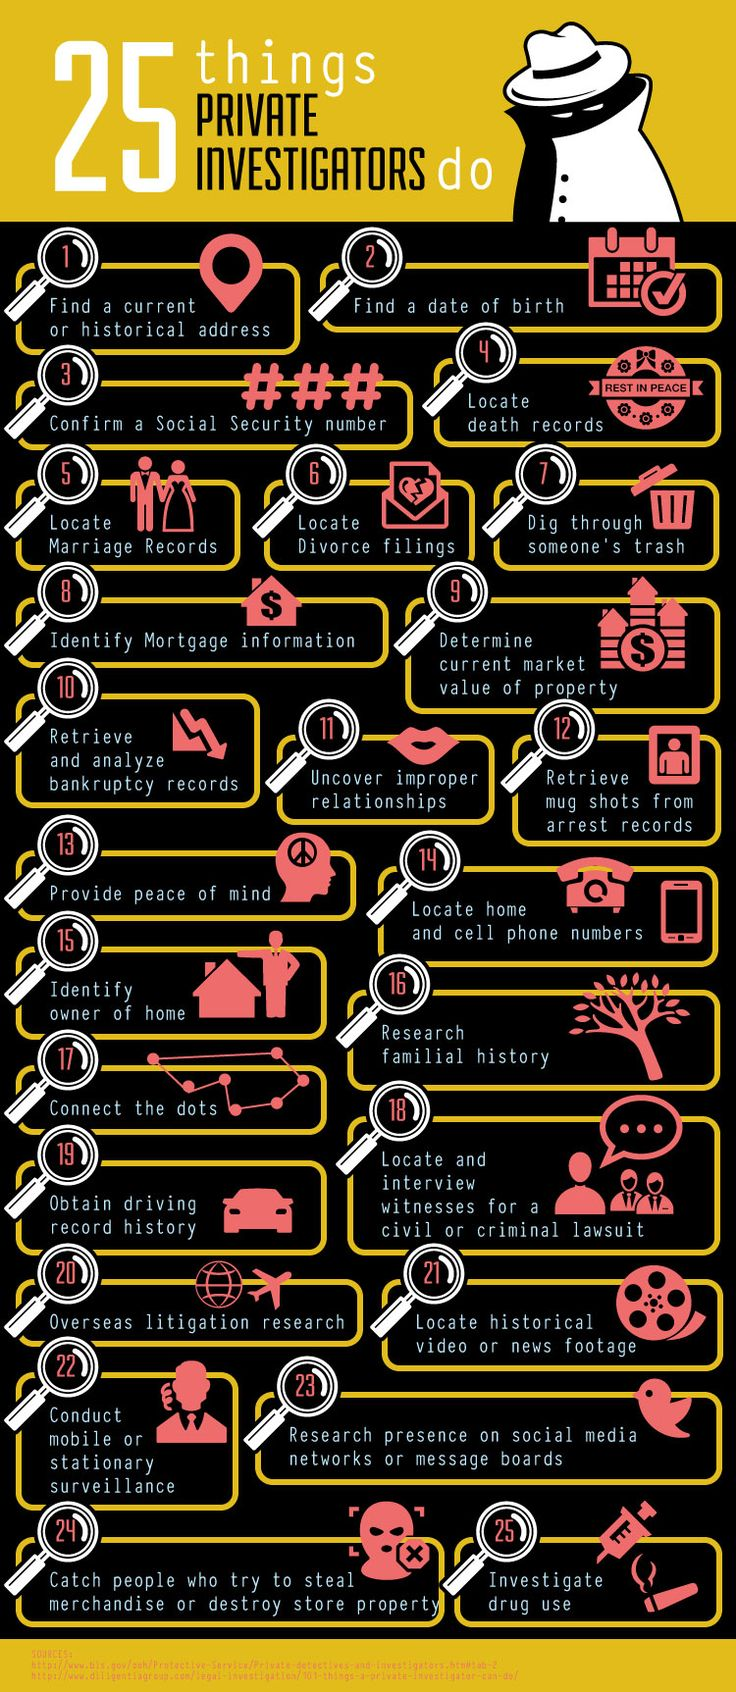 Have you ever wondered about the services provided by private investigators and their tactics to find things out? Check out and share this infographic.